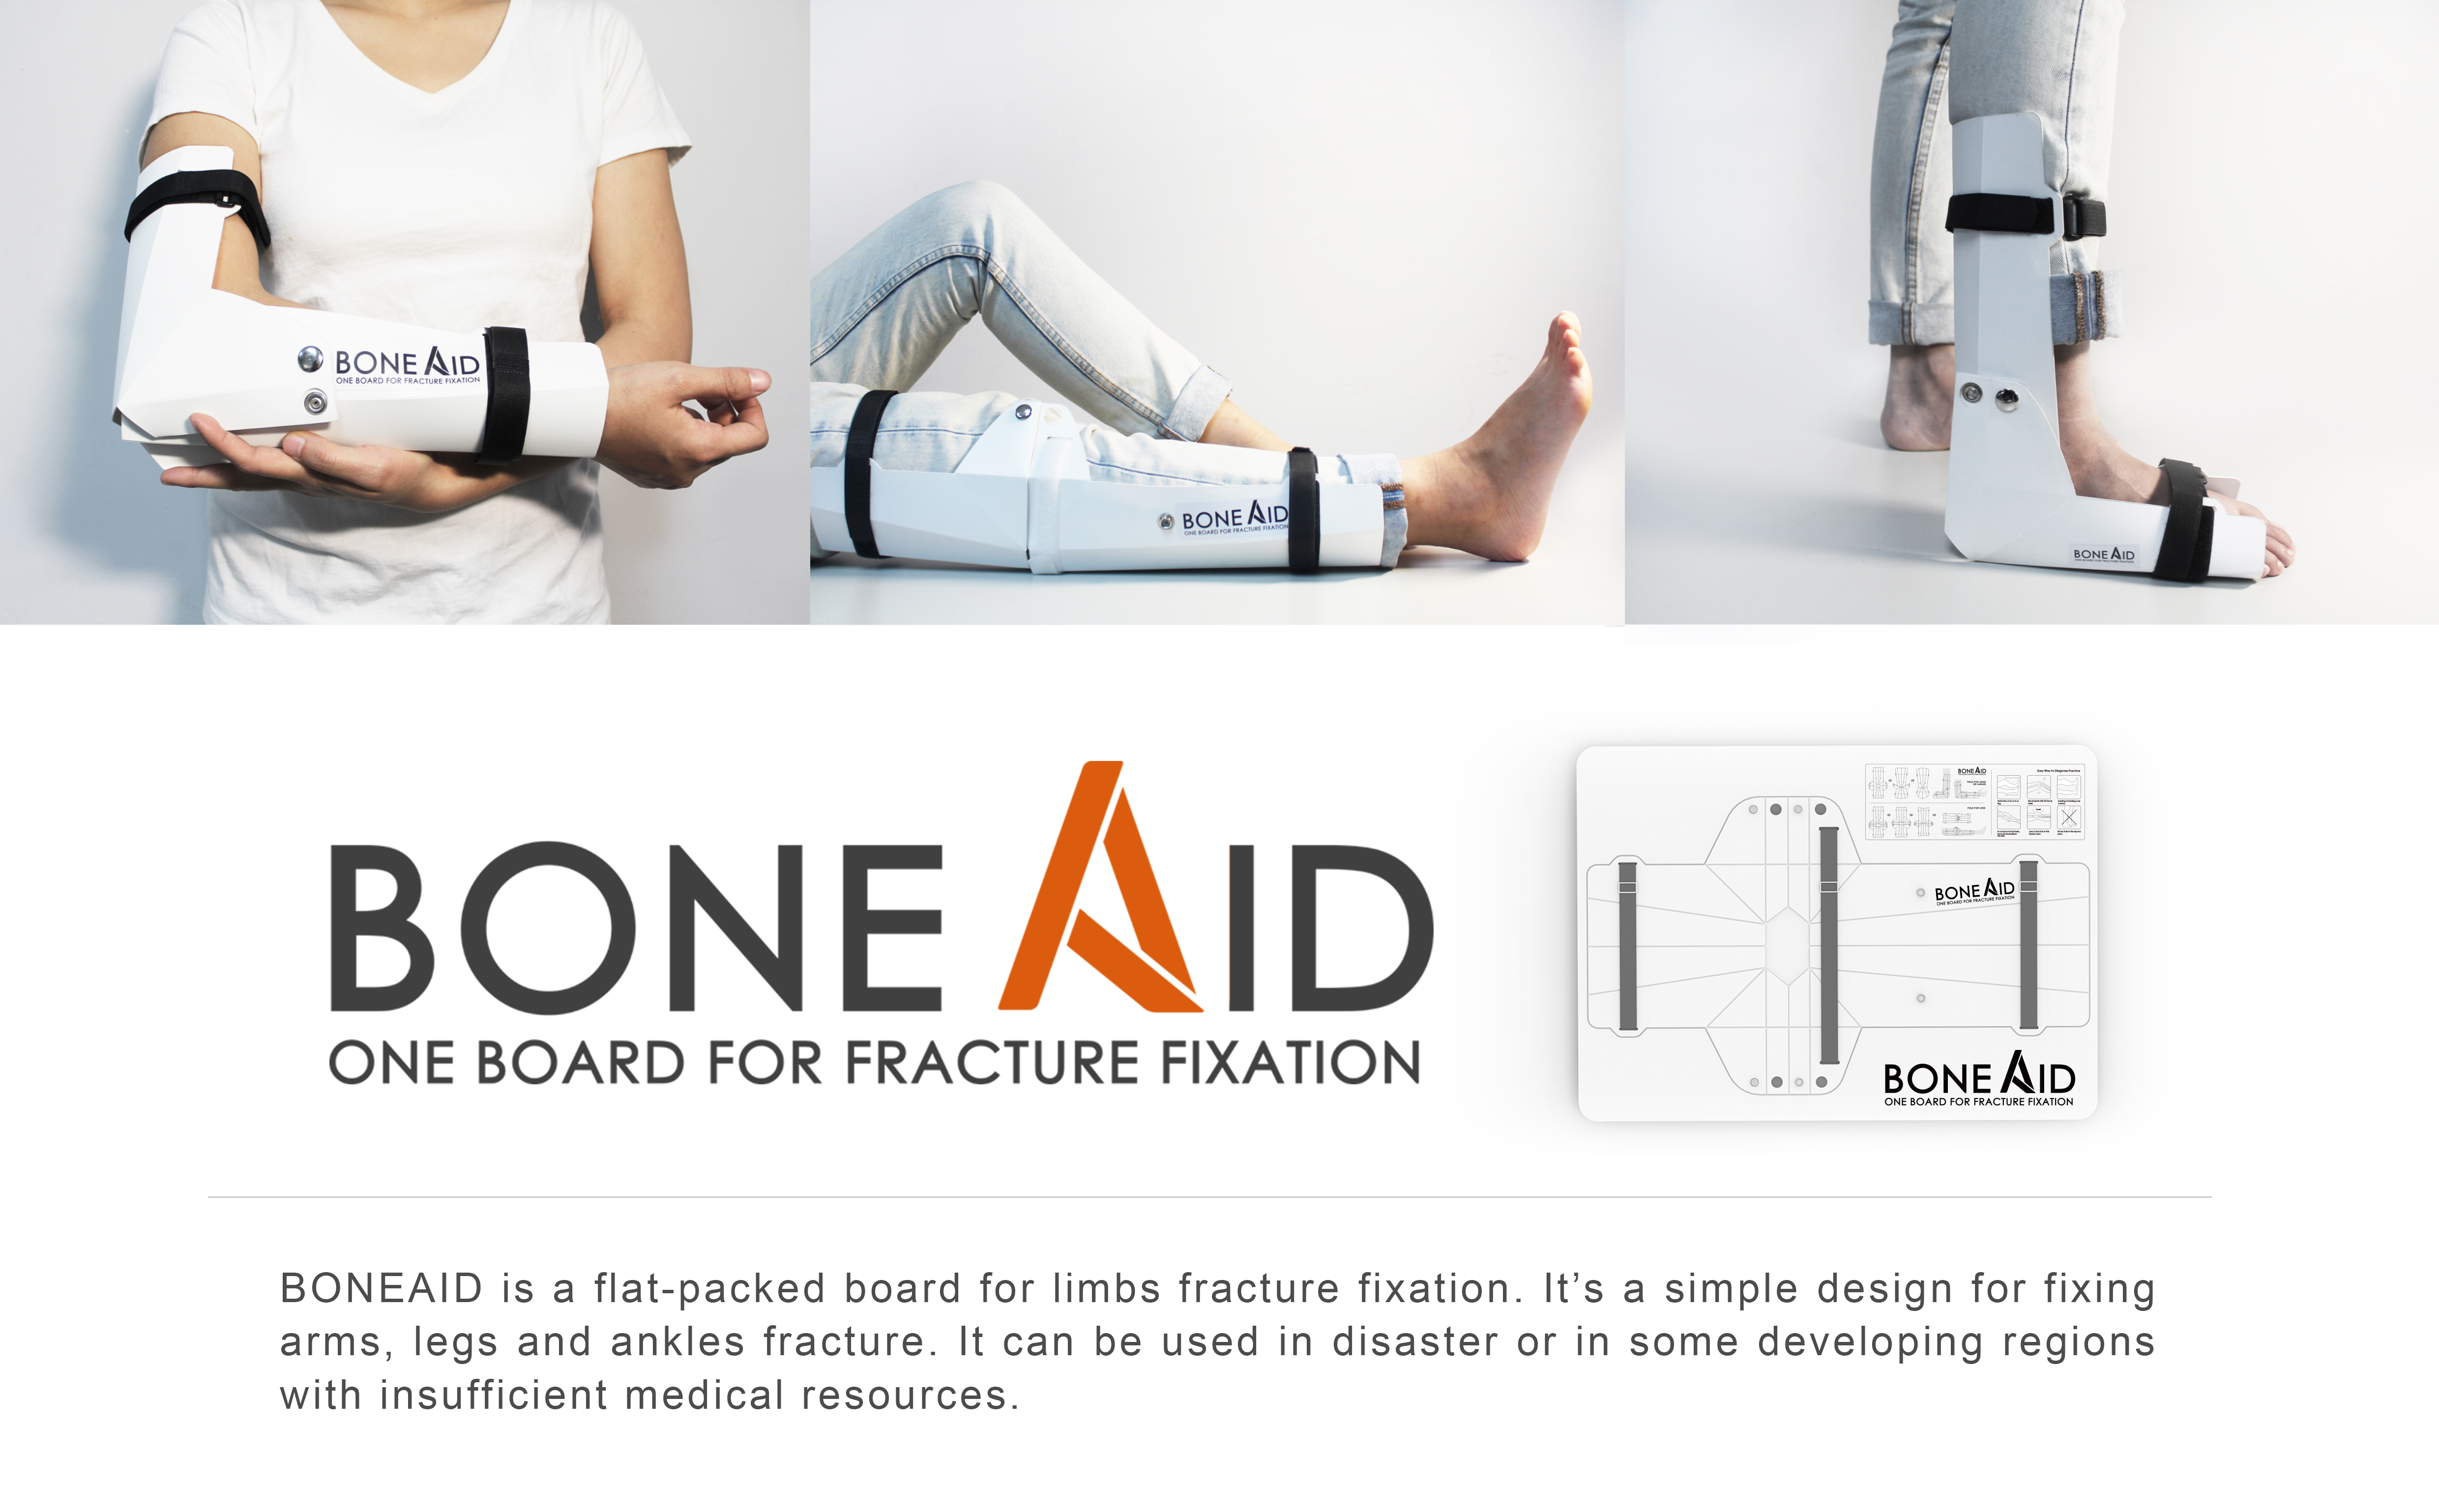 The gold medal and Curator's Choice Award winning work, named BoneAid, was a set of fracture fixation boards designed for emergency needs in disasters.